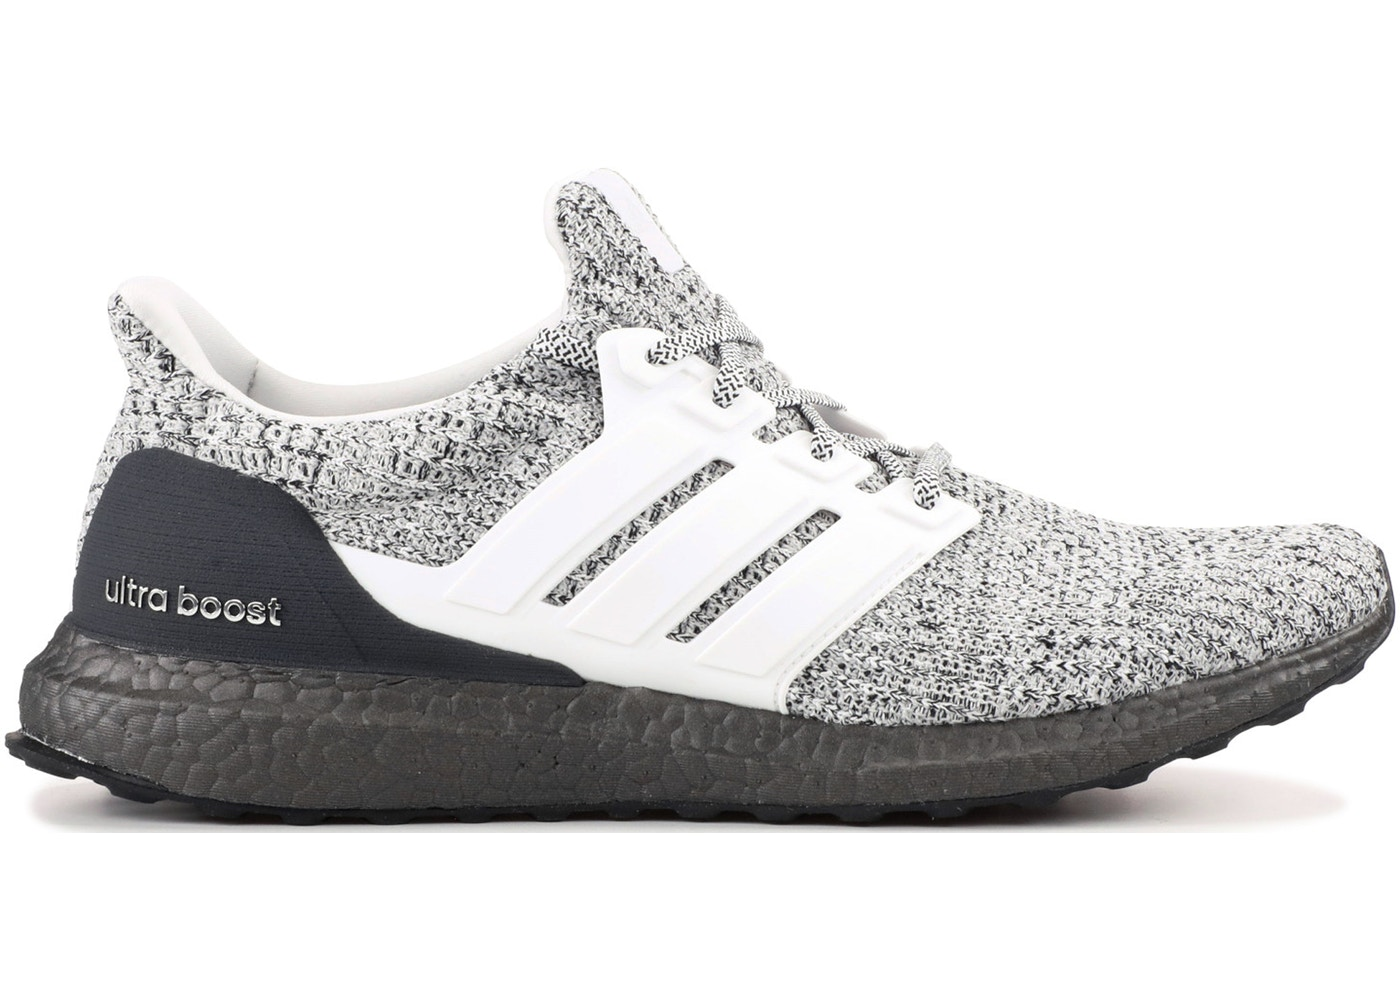 98d3e9e6e75cd adidas Ultra Boost 4.0 Cookies and Cream - BB6180